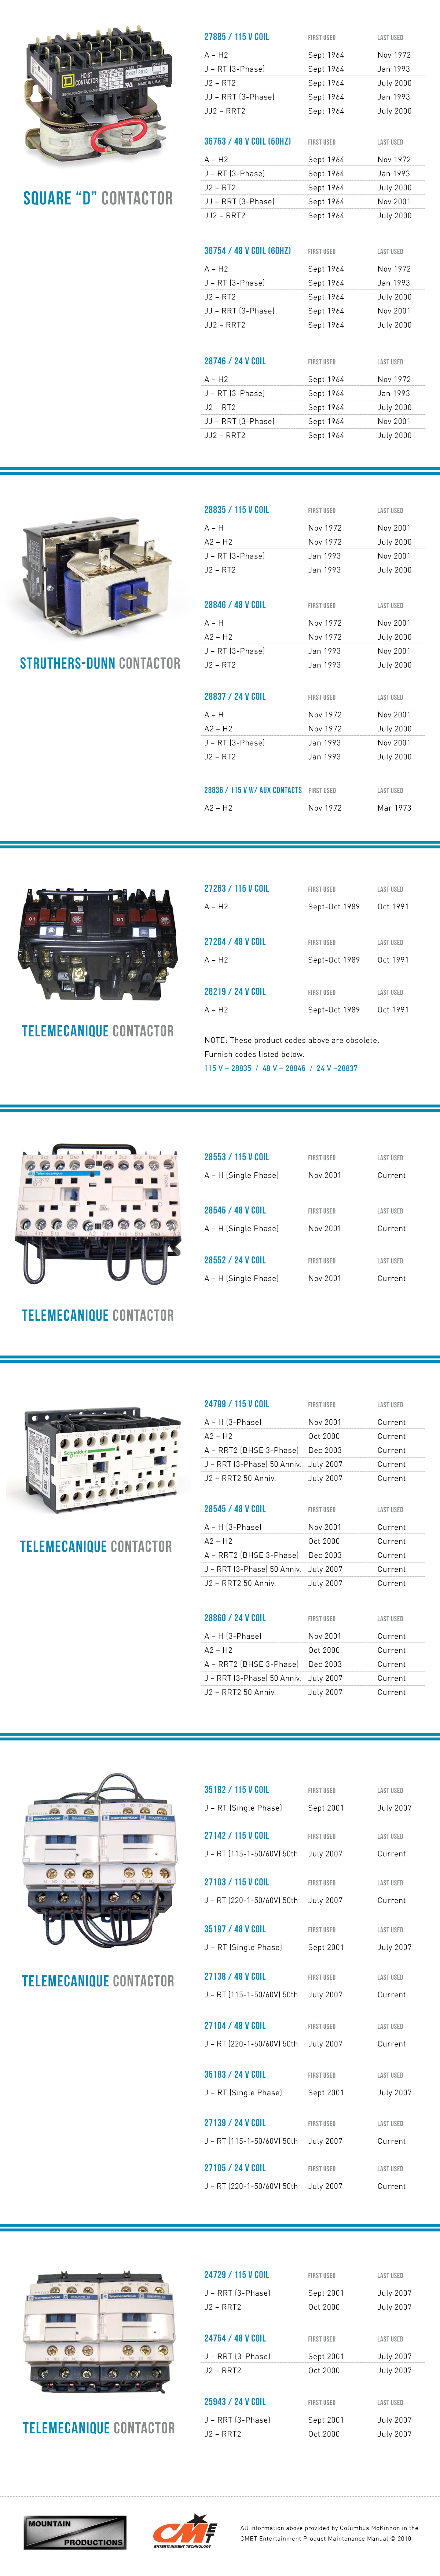 contactor-infographic3